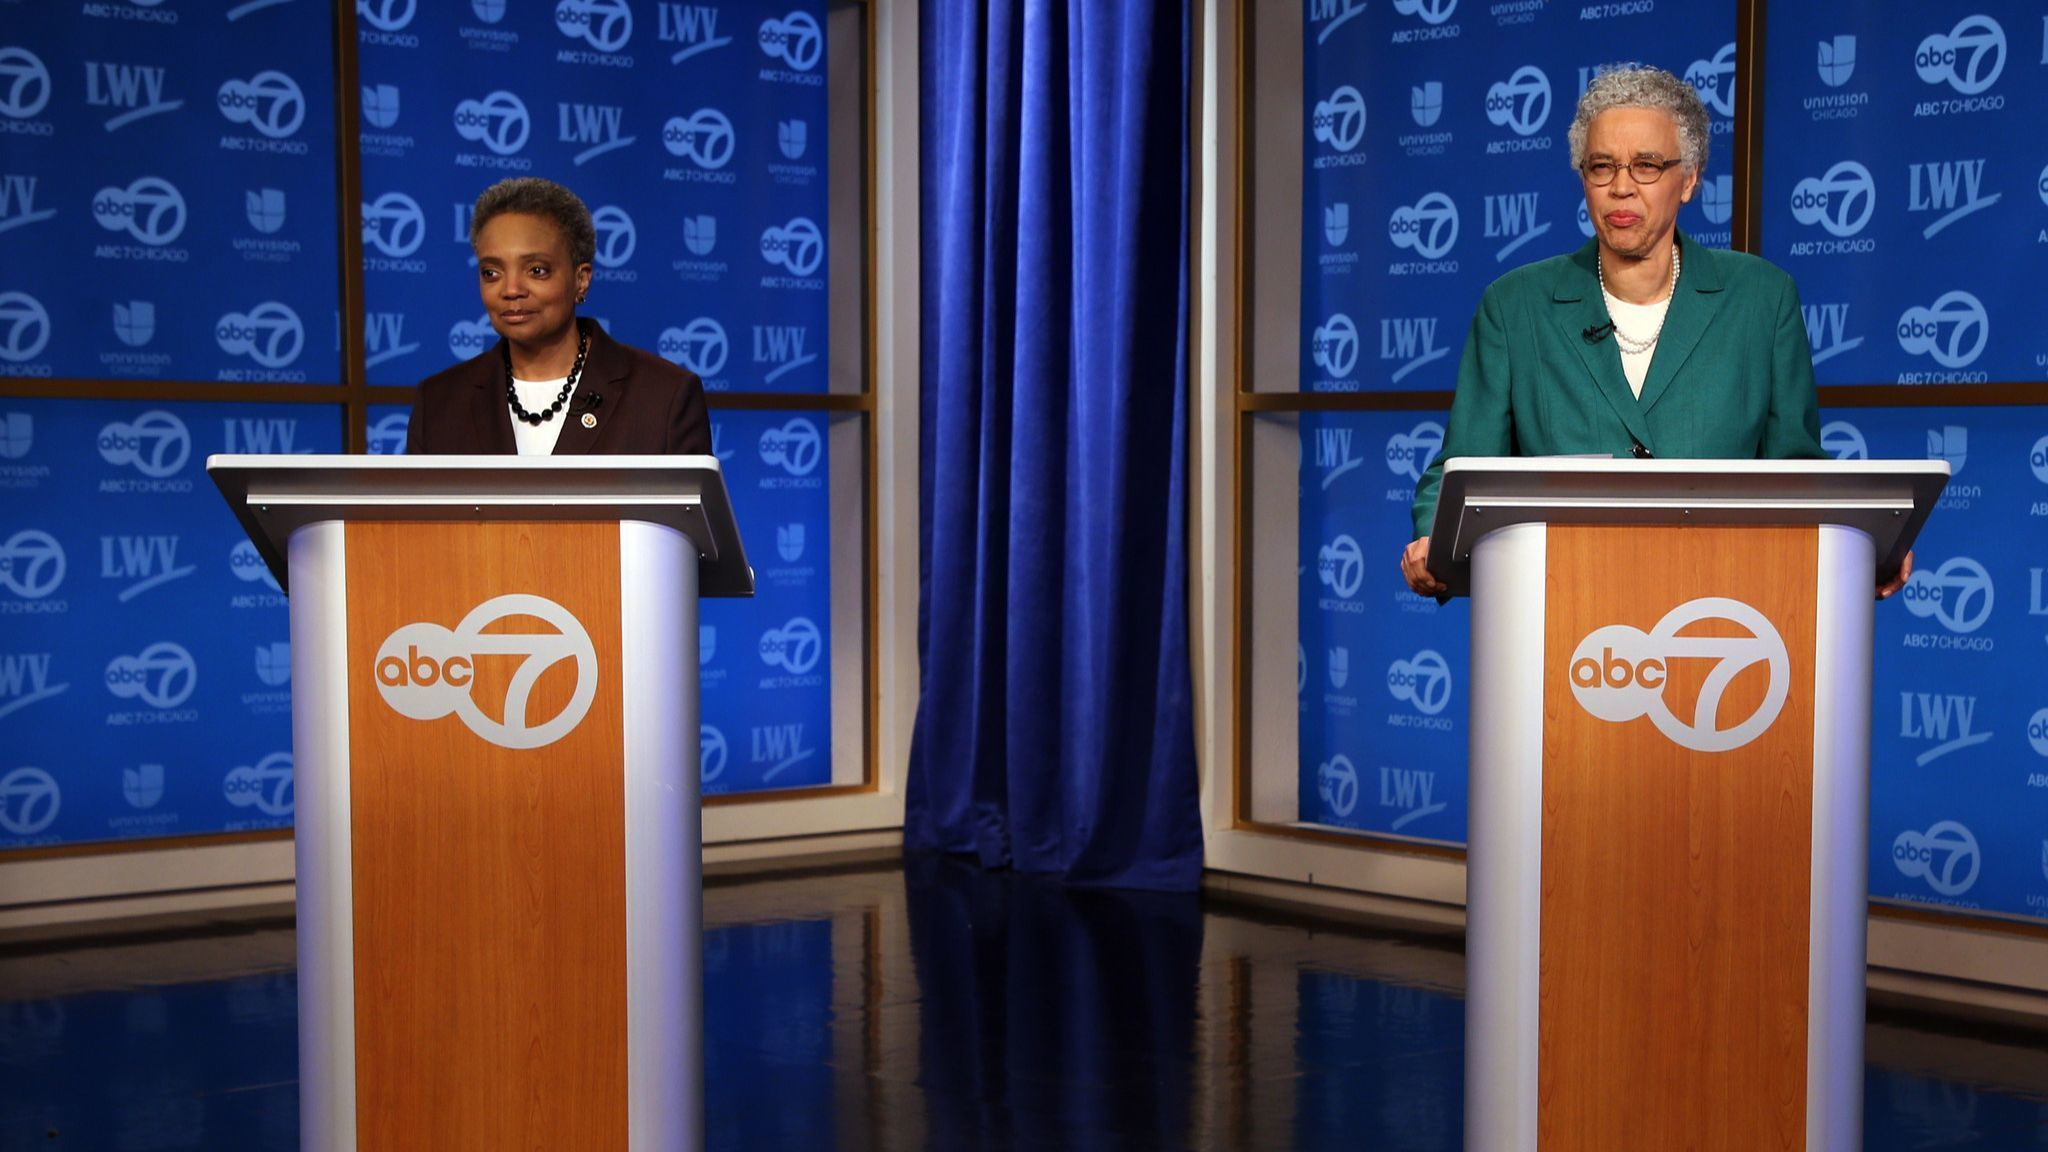 In TV debate, Toni Preckwinkle seizes on whether Lori Lightfoot has the experience to run Chicago